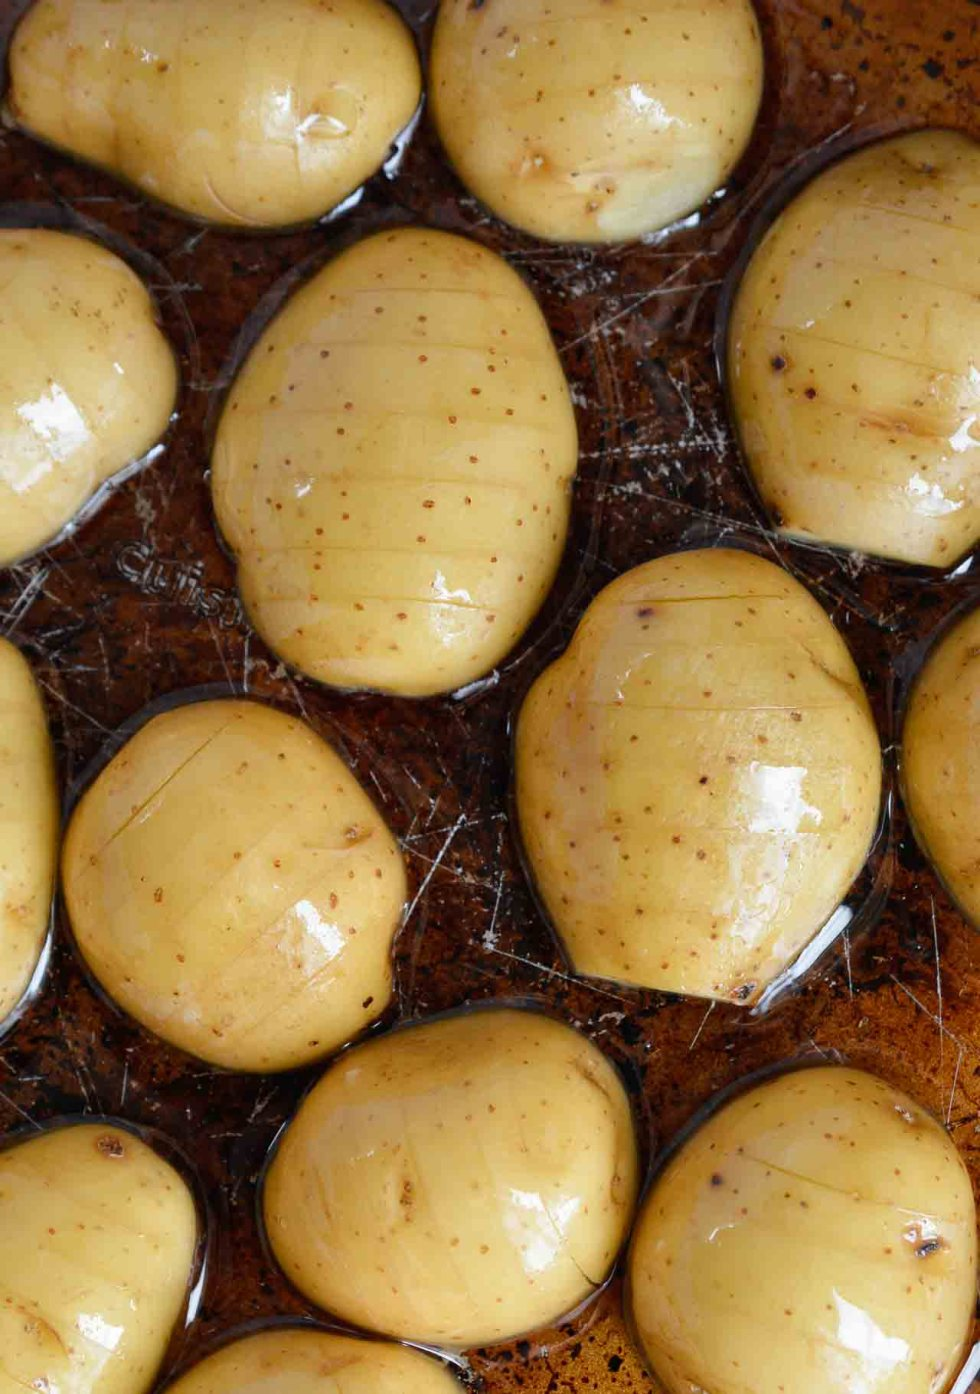 These SimpleOven Roasted Potatoes are absolute potato perfection! Golden brown and crispy on one side, creamy and dreamy on the other. This recipe is great as a side dish for just about any meal! This recipe is Whole30 compliant, Vegan, Gluten Free and Dairy Free. #dairyfreerecipes #whole30recipes